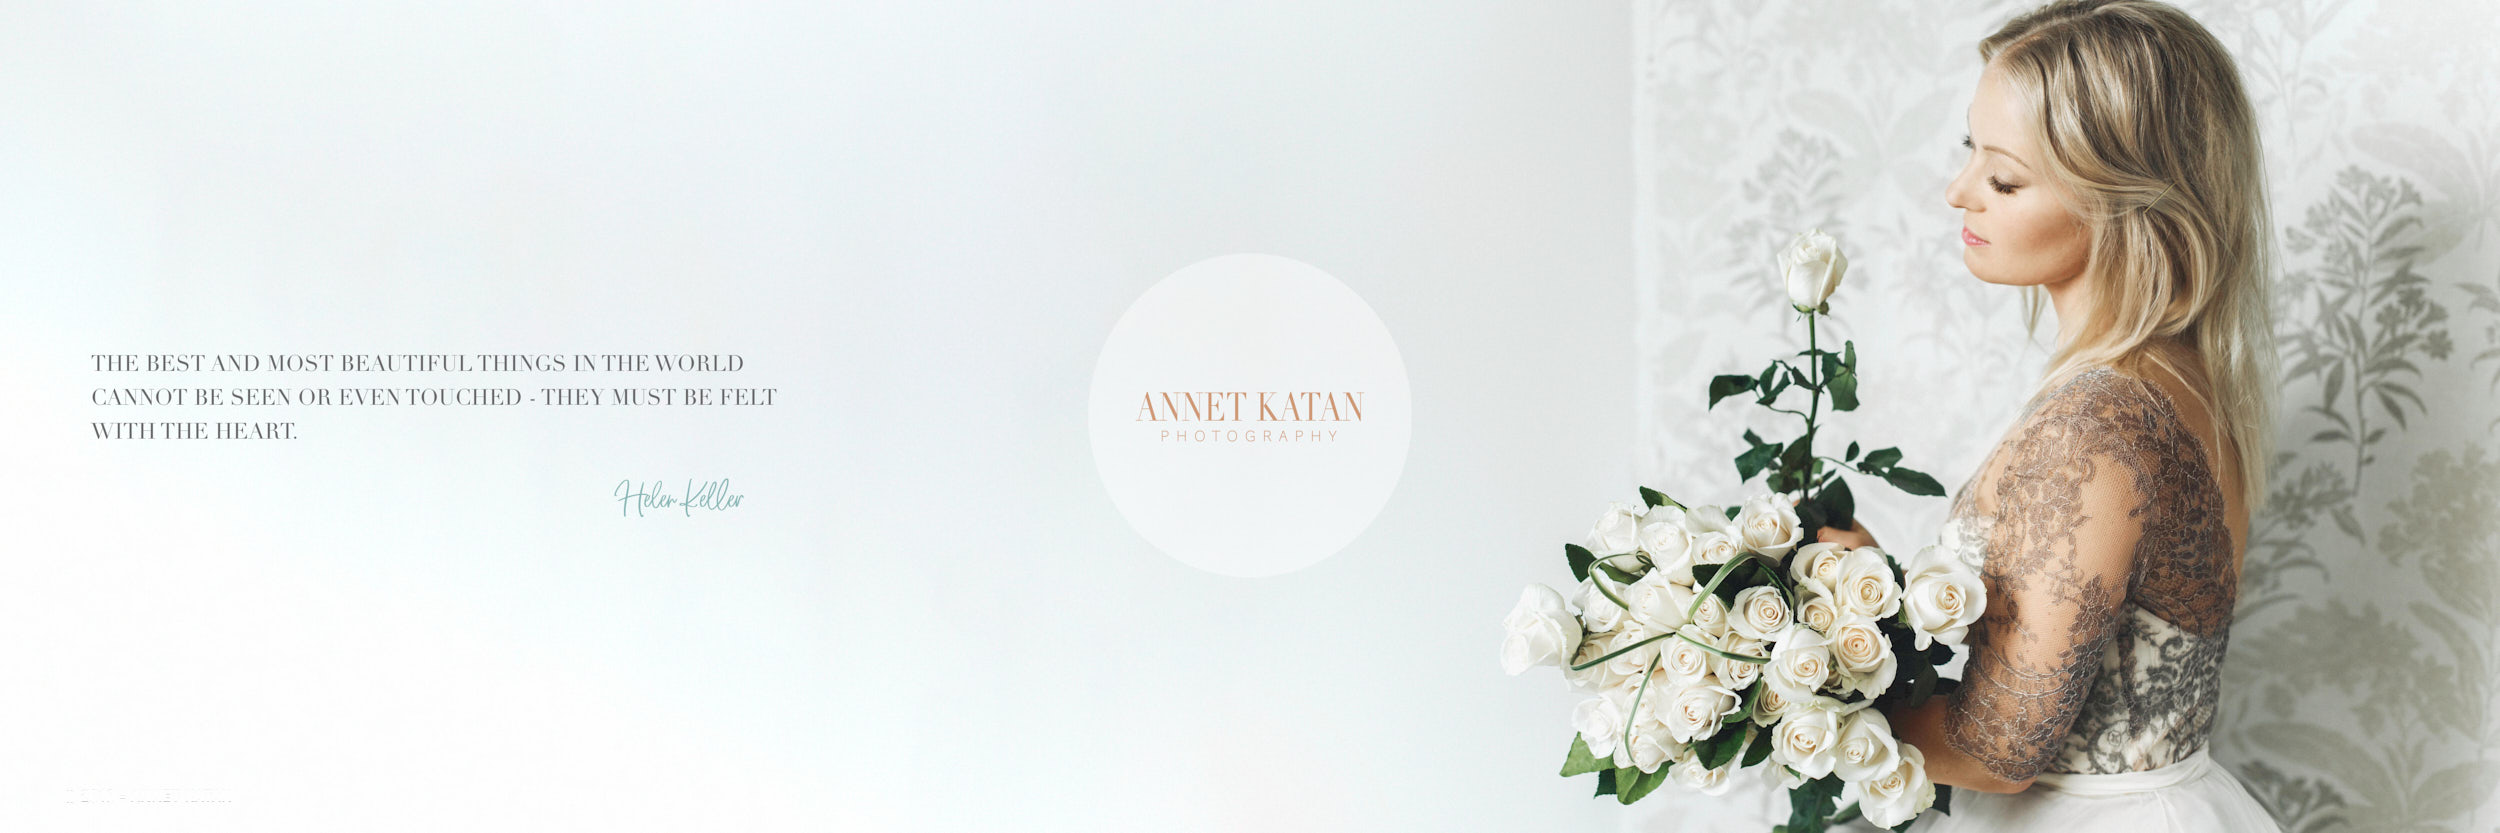 Annet_Katan_Phoytography_Studio Session-246-Edit-EditColour 1 1.jpg